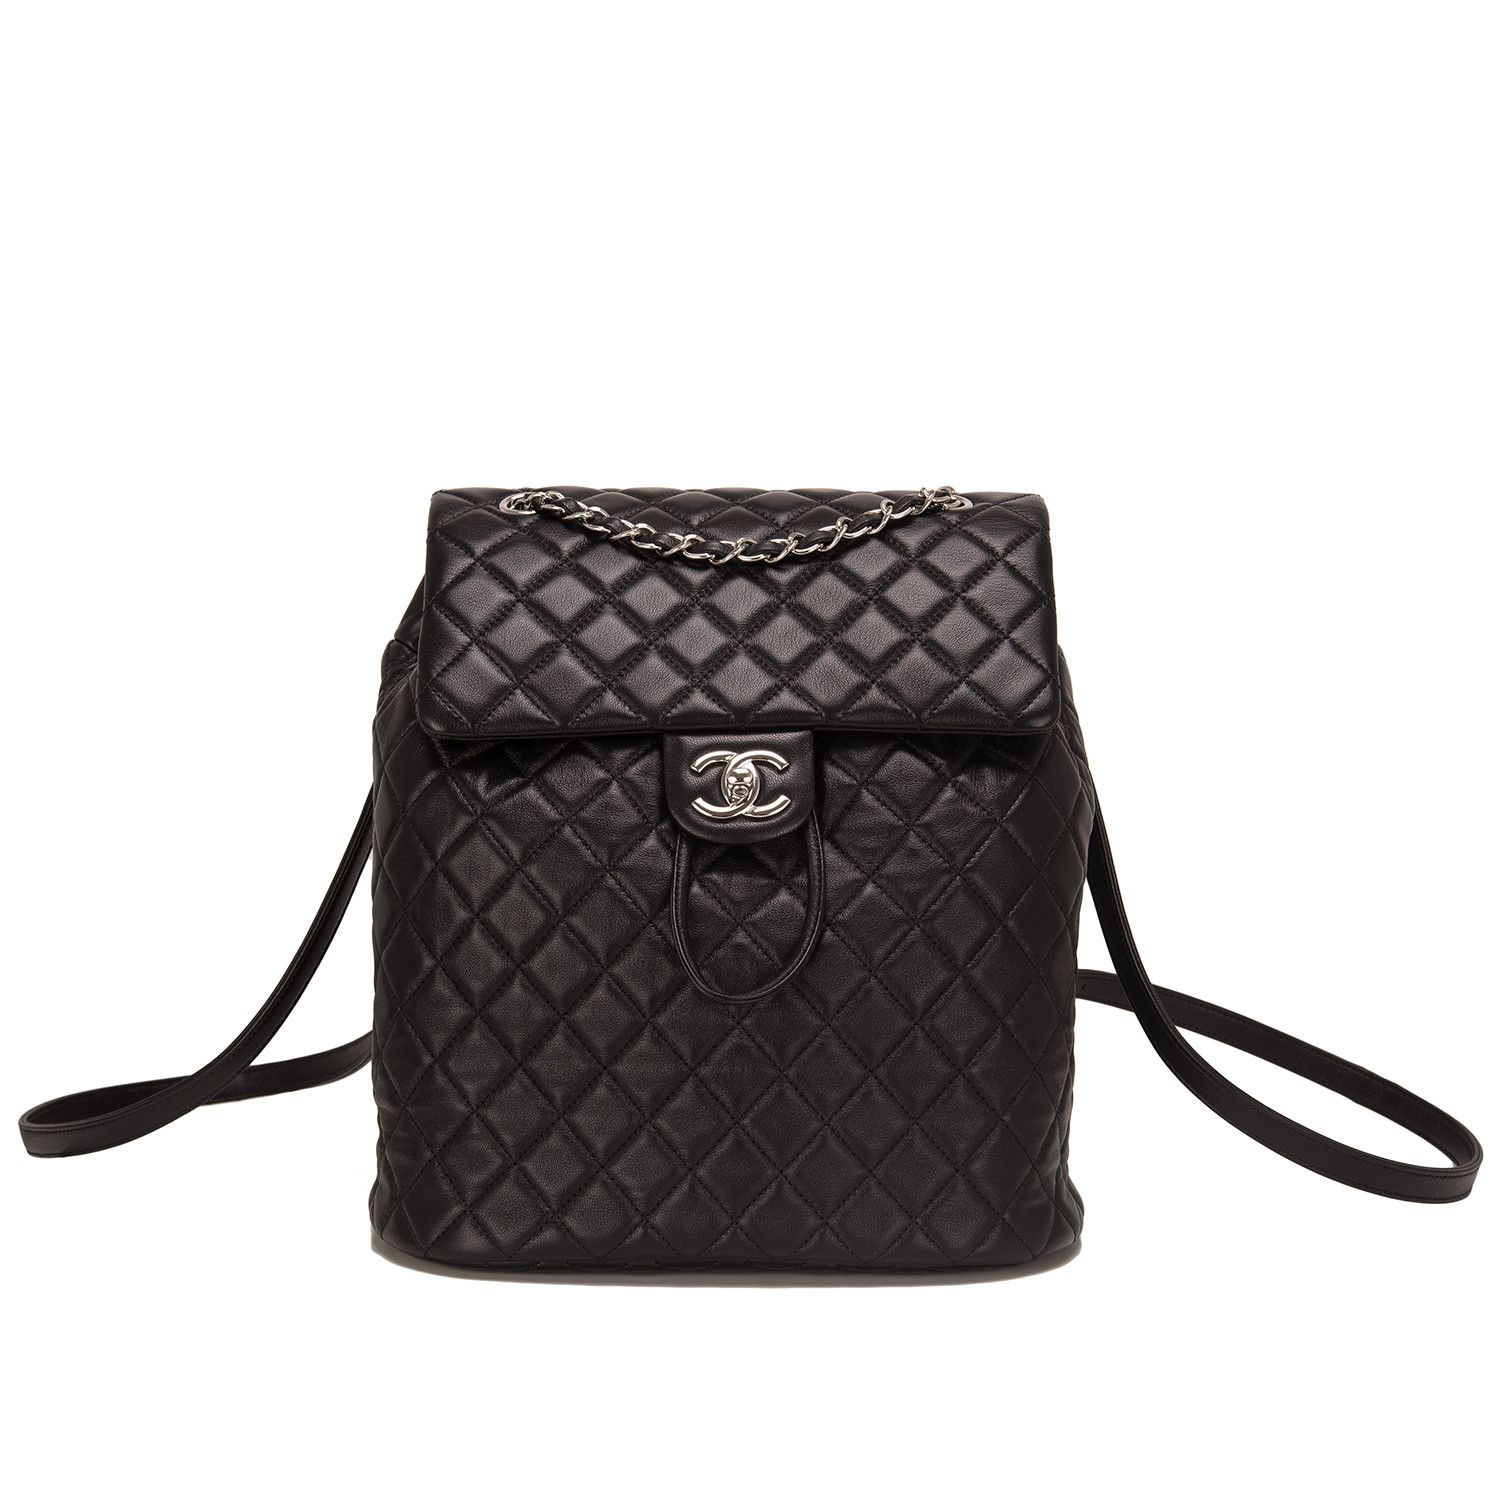 07098449dfe4 Chanel Urban Spirit Black Quilted Lambskin Large Backpack | Clothes ...